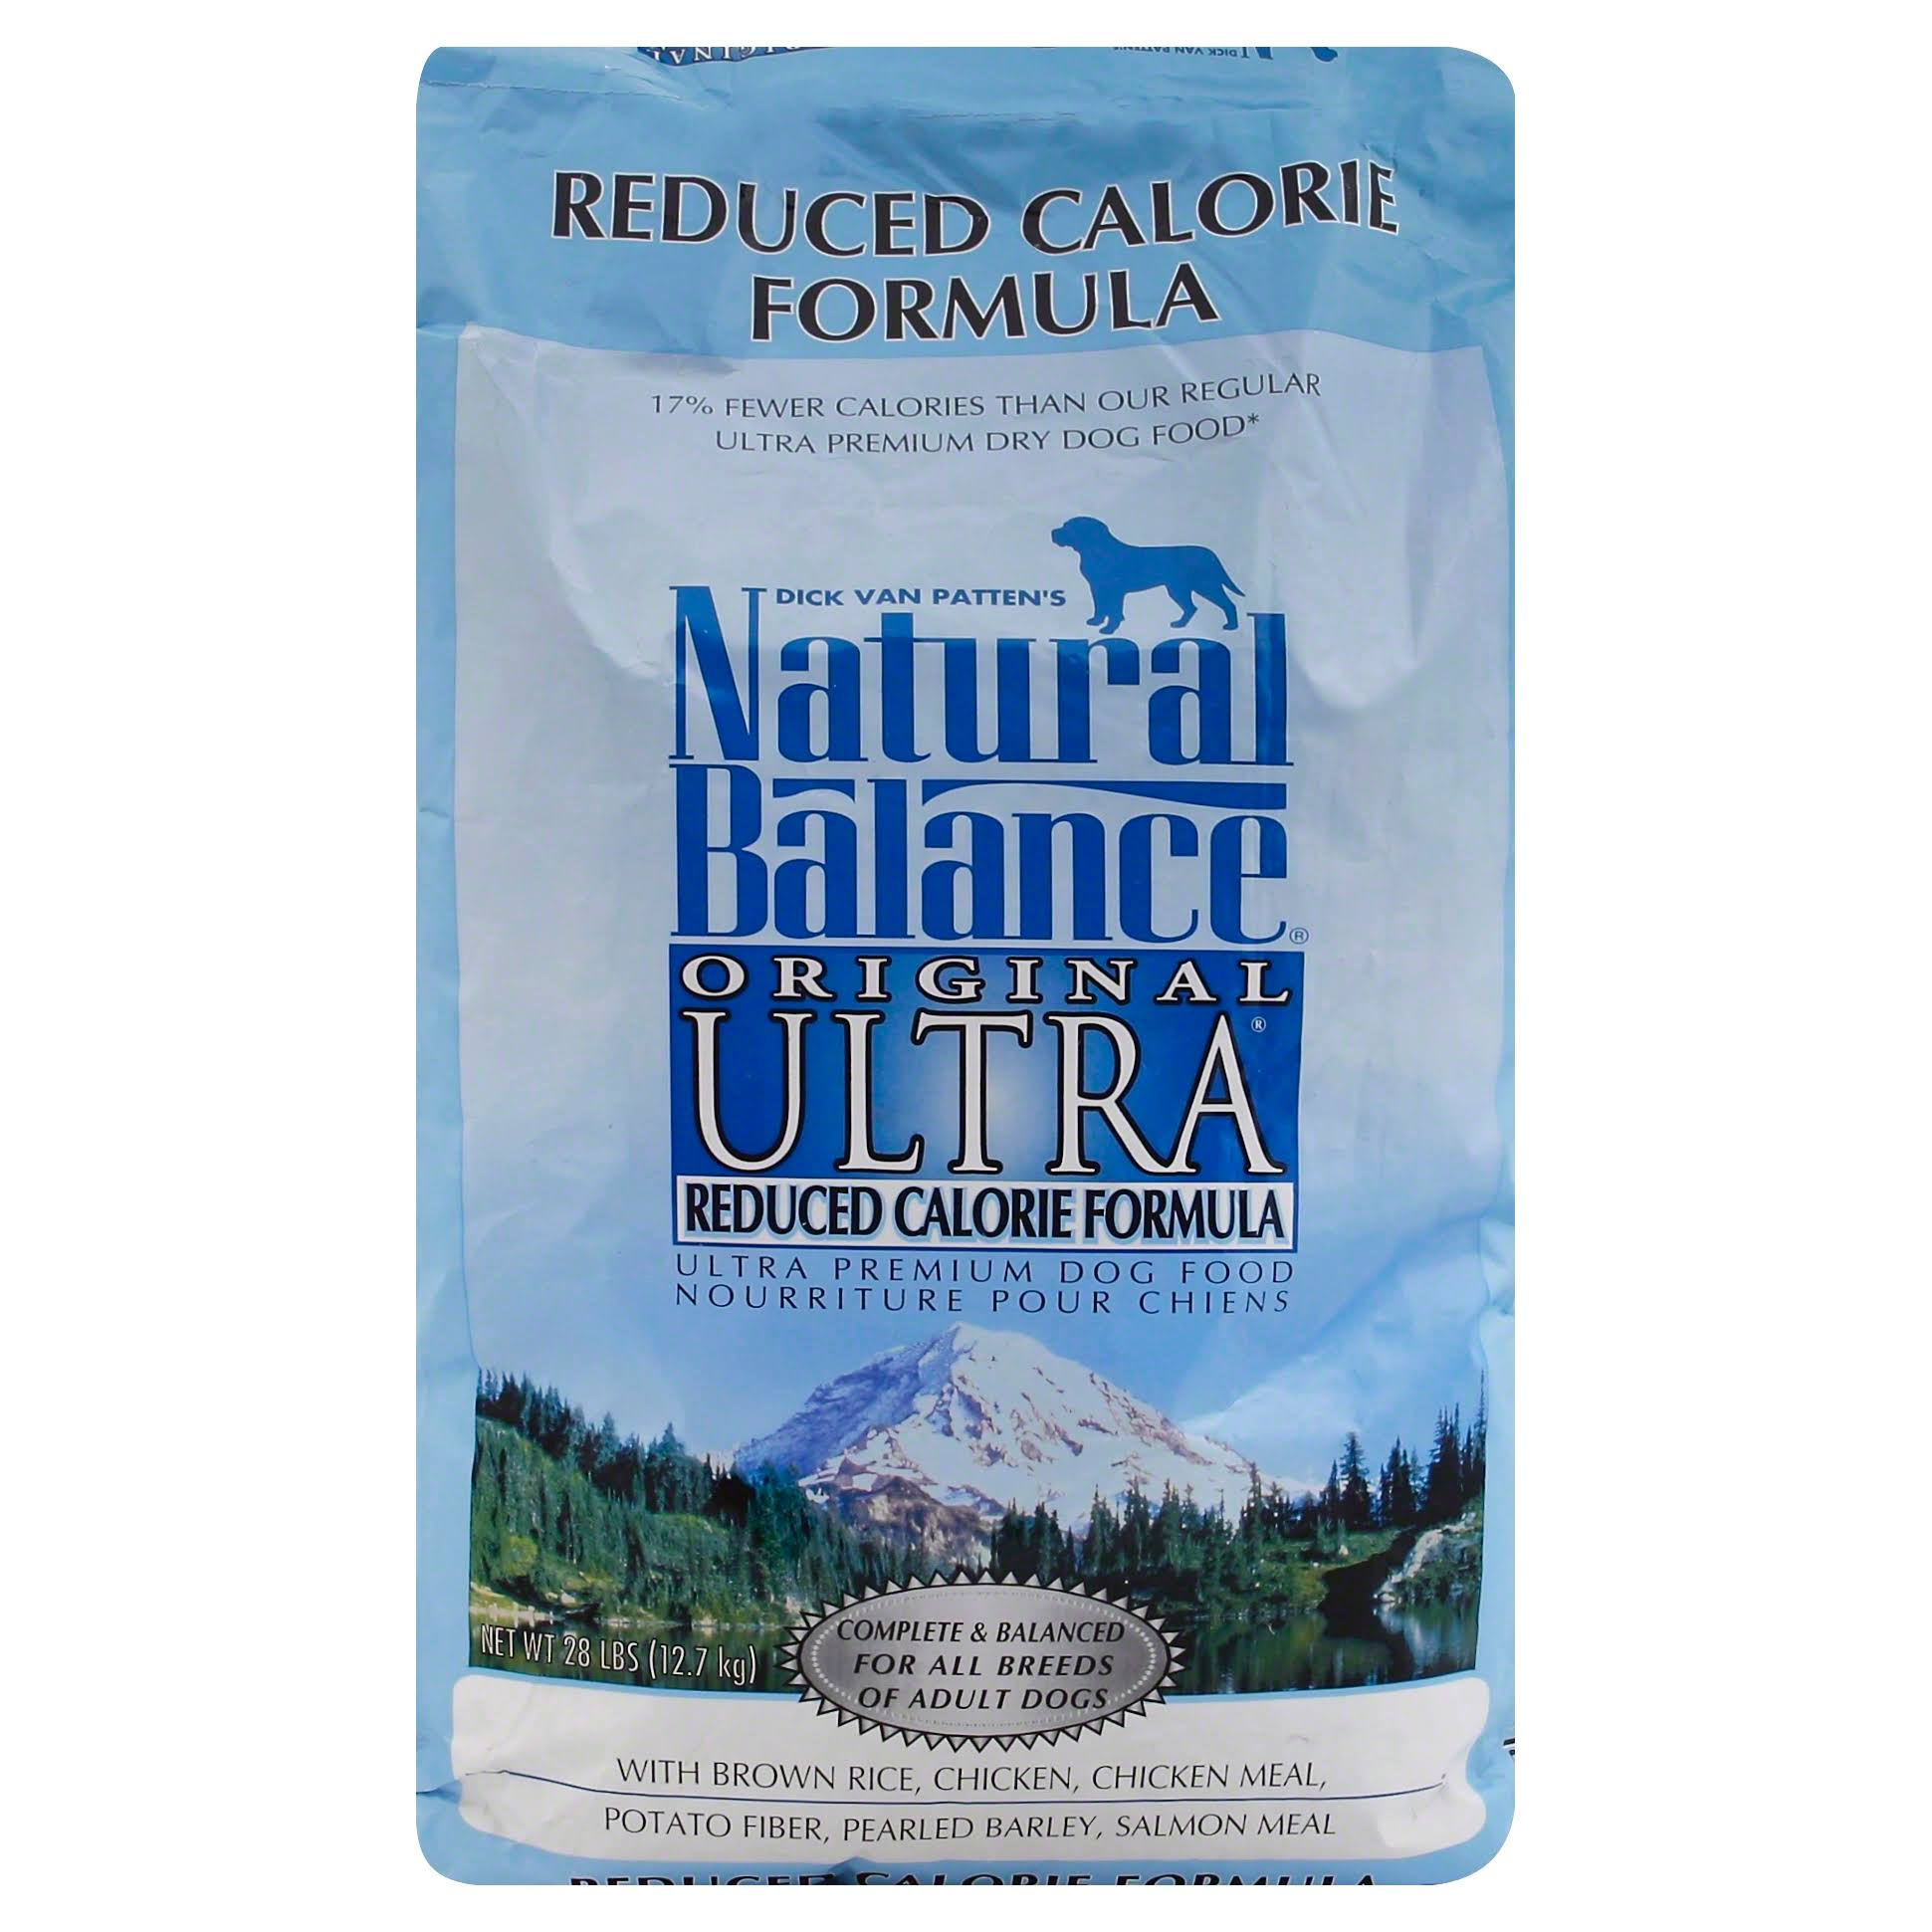 Natural Balance Original Ultra Reduced Calorie Dry Dog Formula - 28lbs